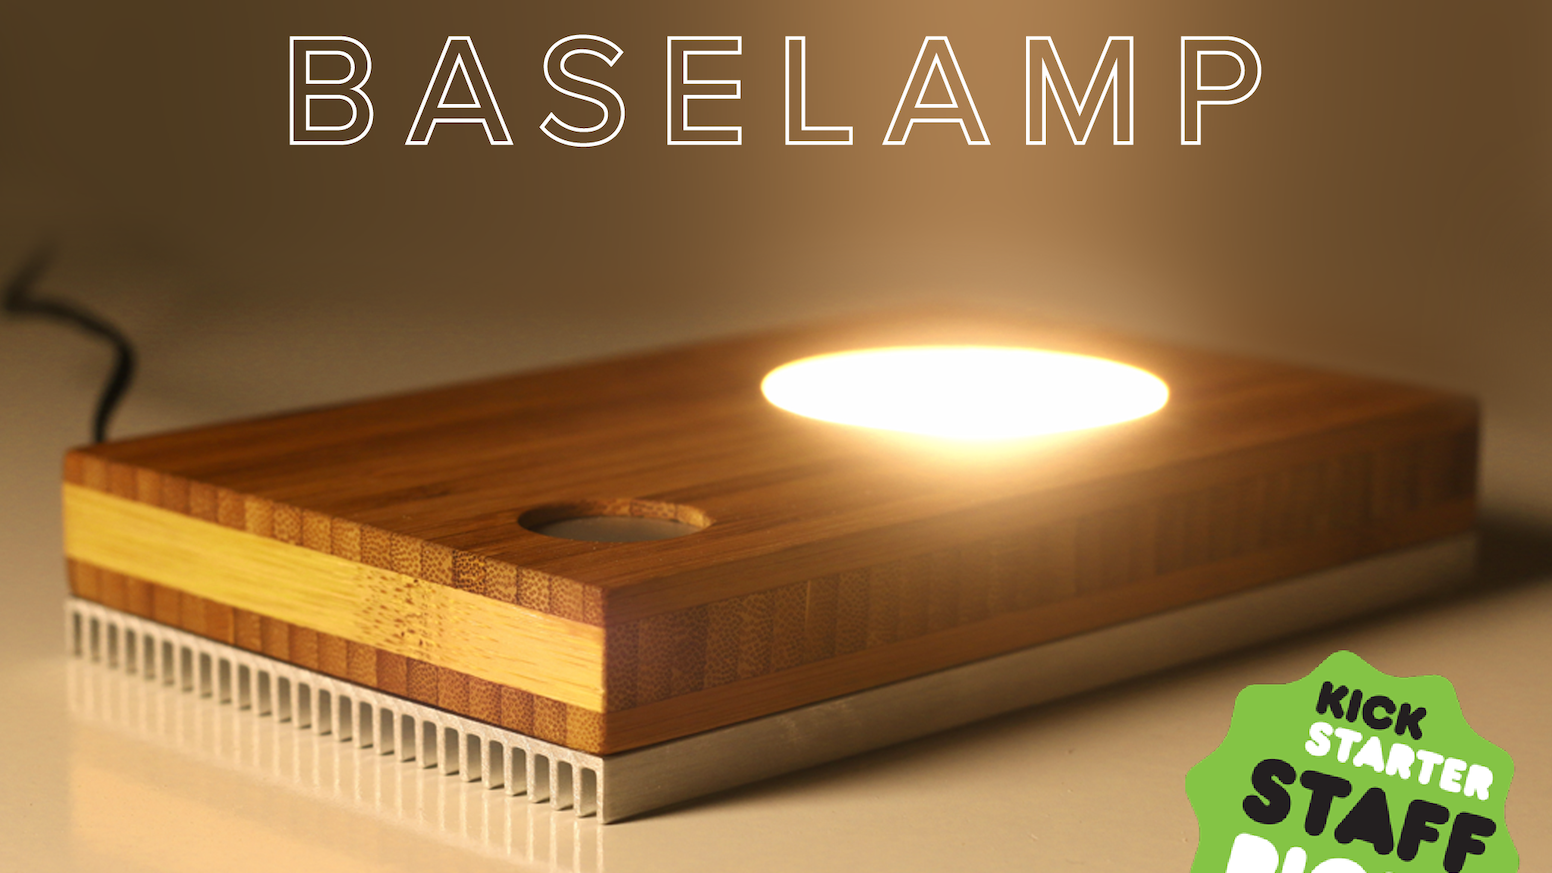 A dimmable LED light designed to turn almost anything into a lamp – handmade in New York and built to work anywhere in the world.